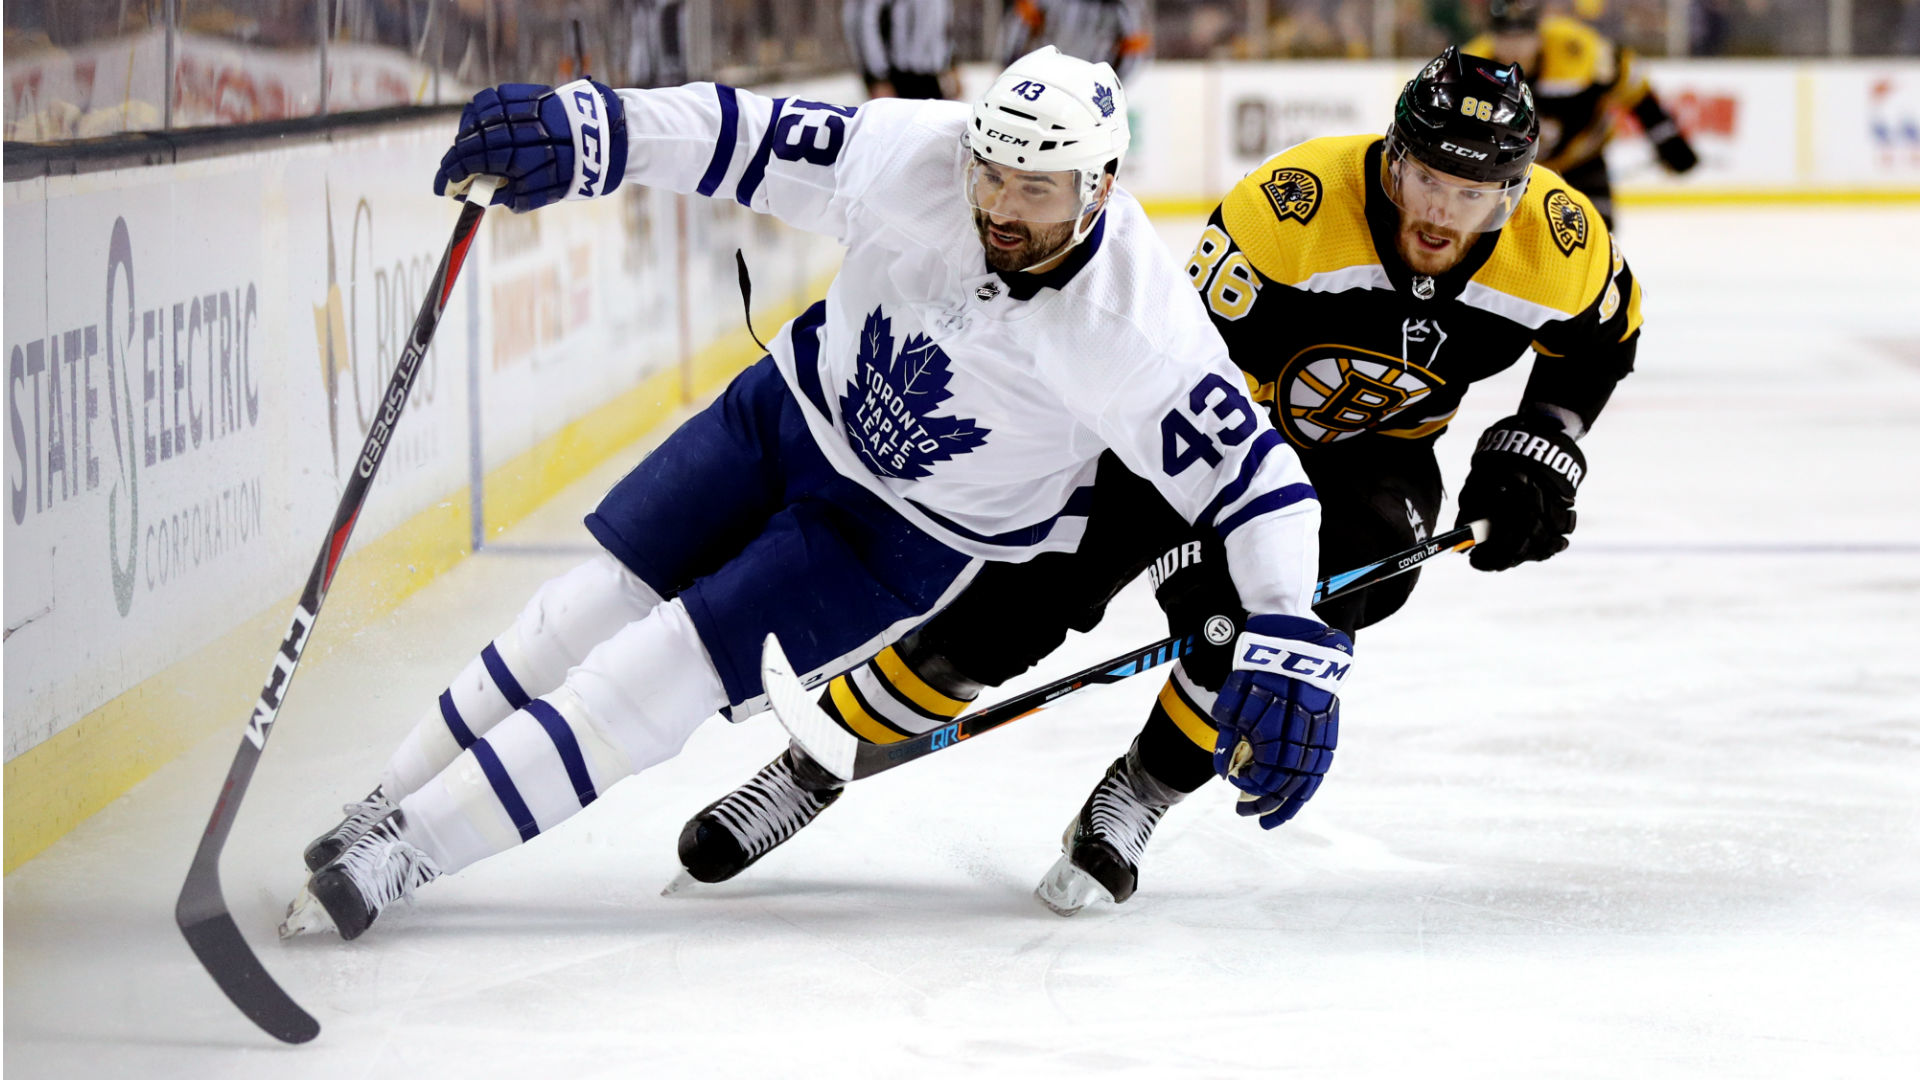 Maple Leafs vs. Bruins Game 6: Full highlights, final score and more